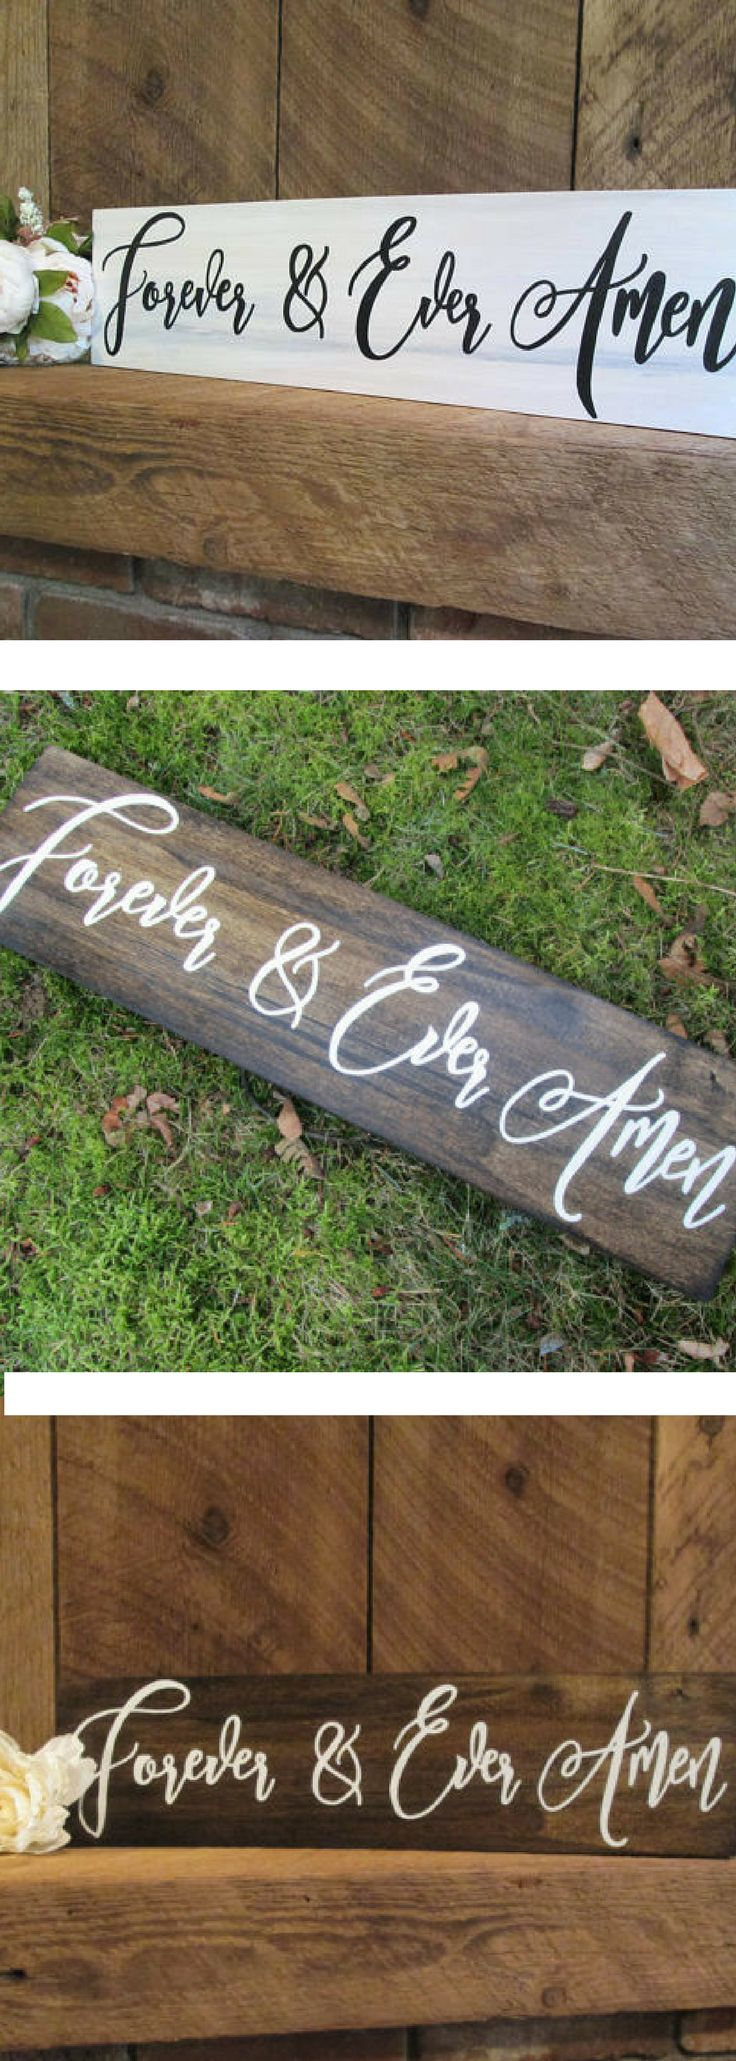 Forever and ever amen wood sign, rustic wall decor, wood anniversary gift, wood engagement sign, wood wedding sign, rustic home decor, sign , valentine's day gift idea for her, for him #ad #rustichomedecor